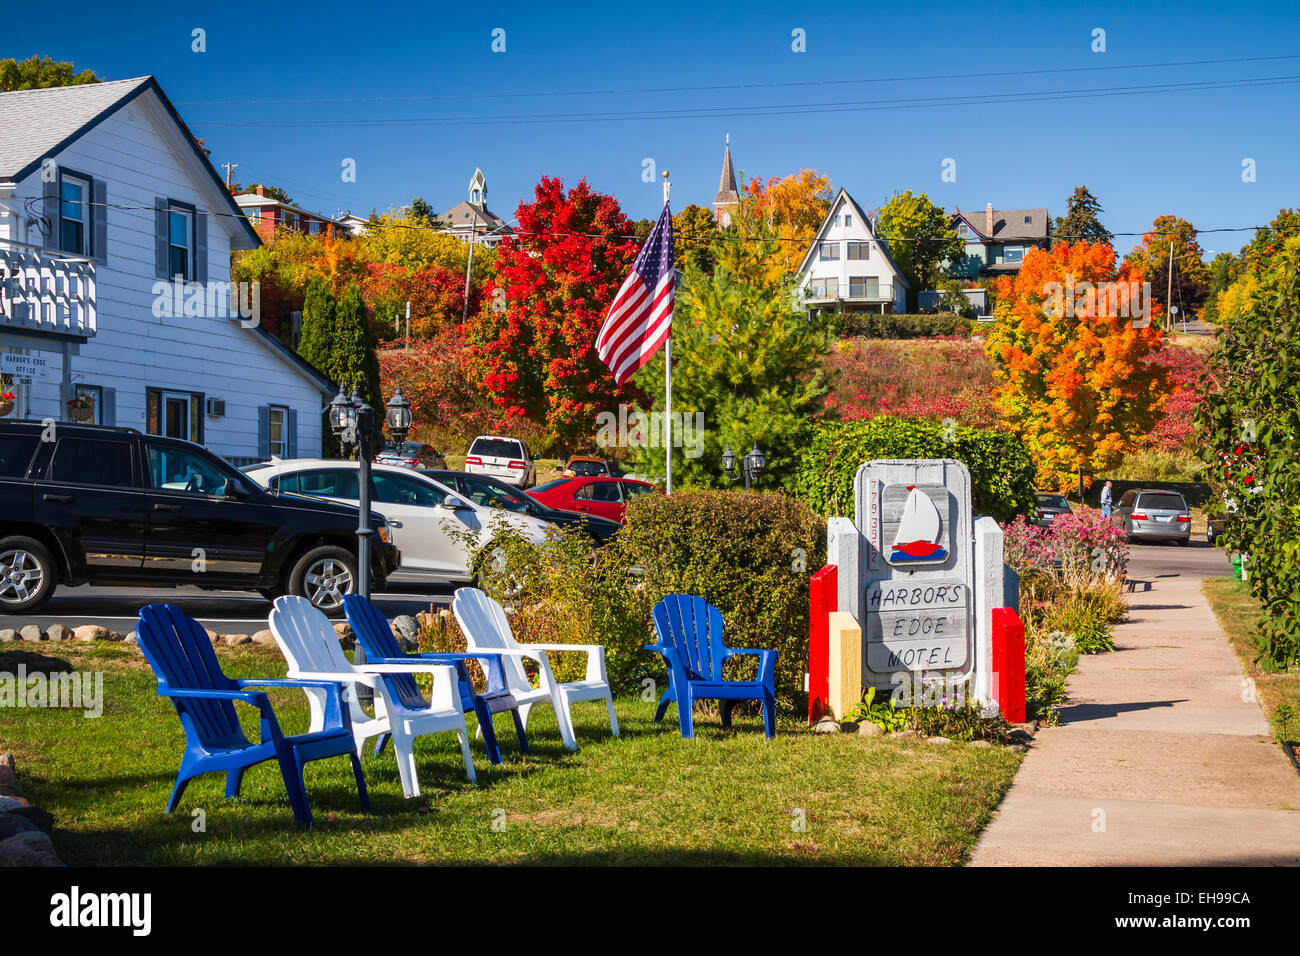 The Harbors Edge Motel with fall foliage color in Bayfield, Wisconsin, USA, America. - Stock Image